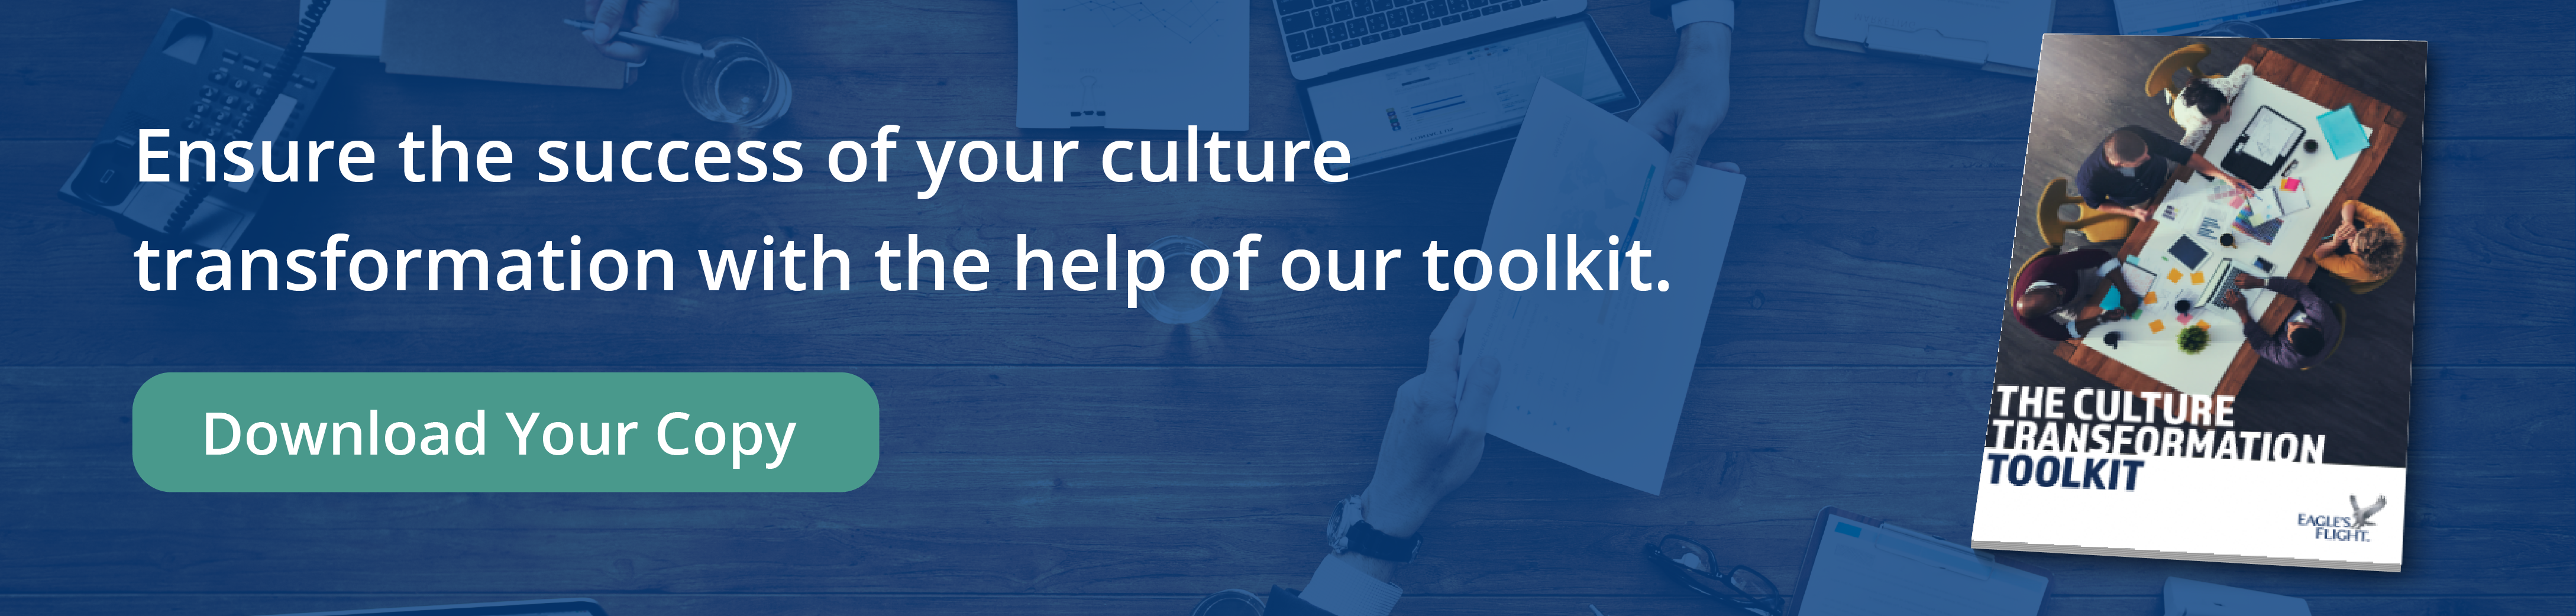 Culture Transformation Toolkit